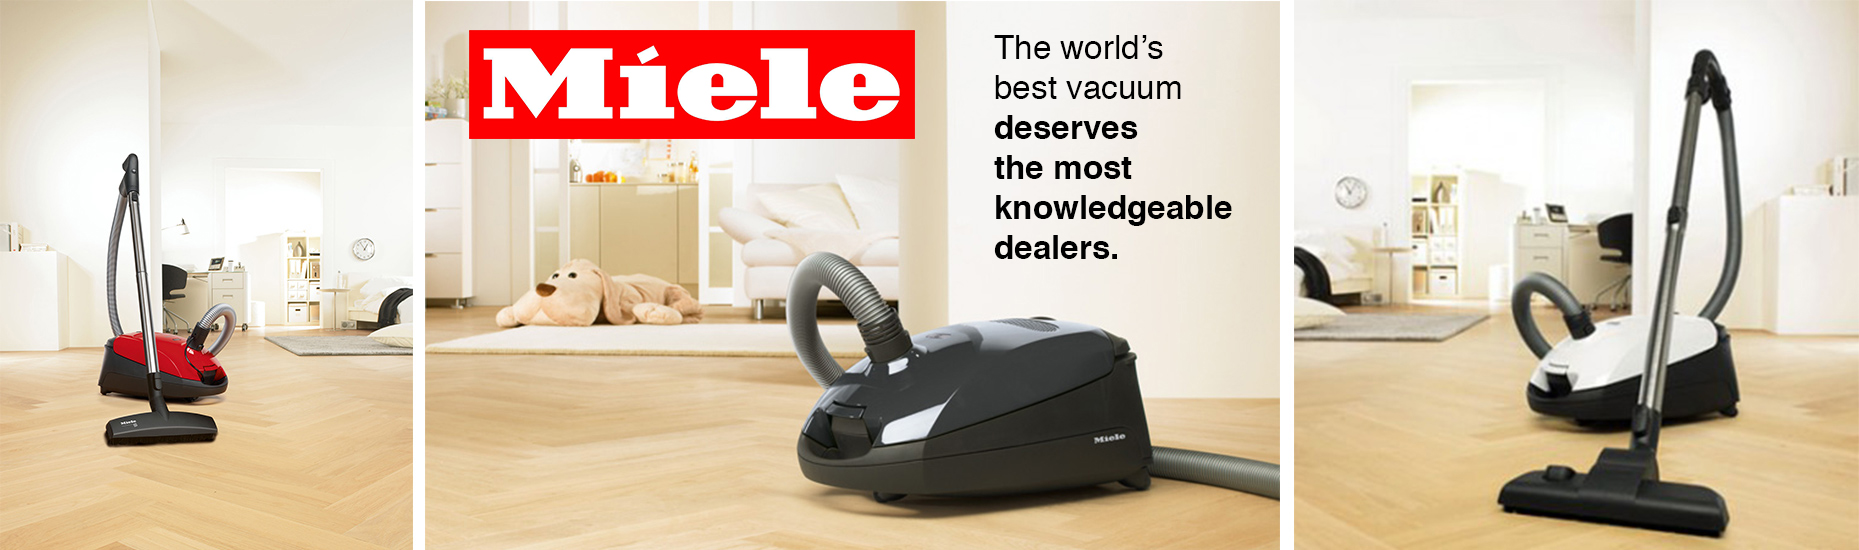 Miele Ad - The world's best vacuum deserves the most knowledgable dealers.